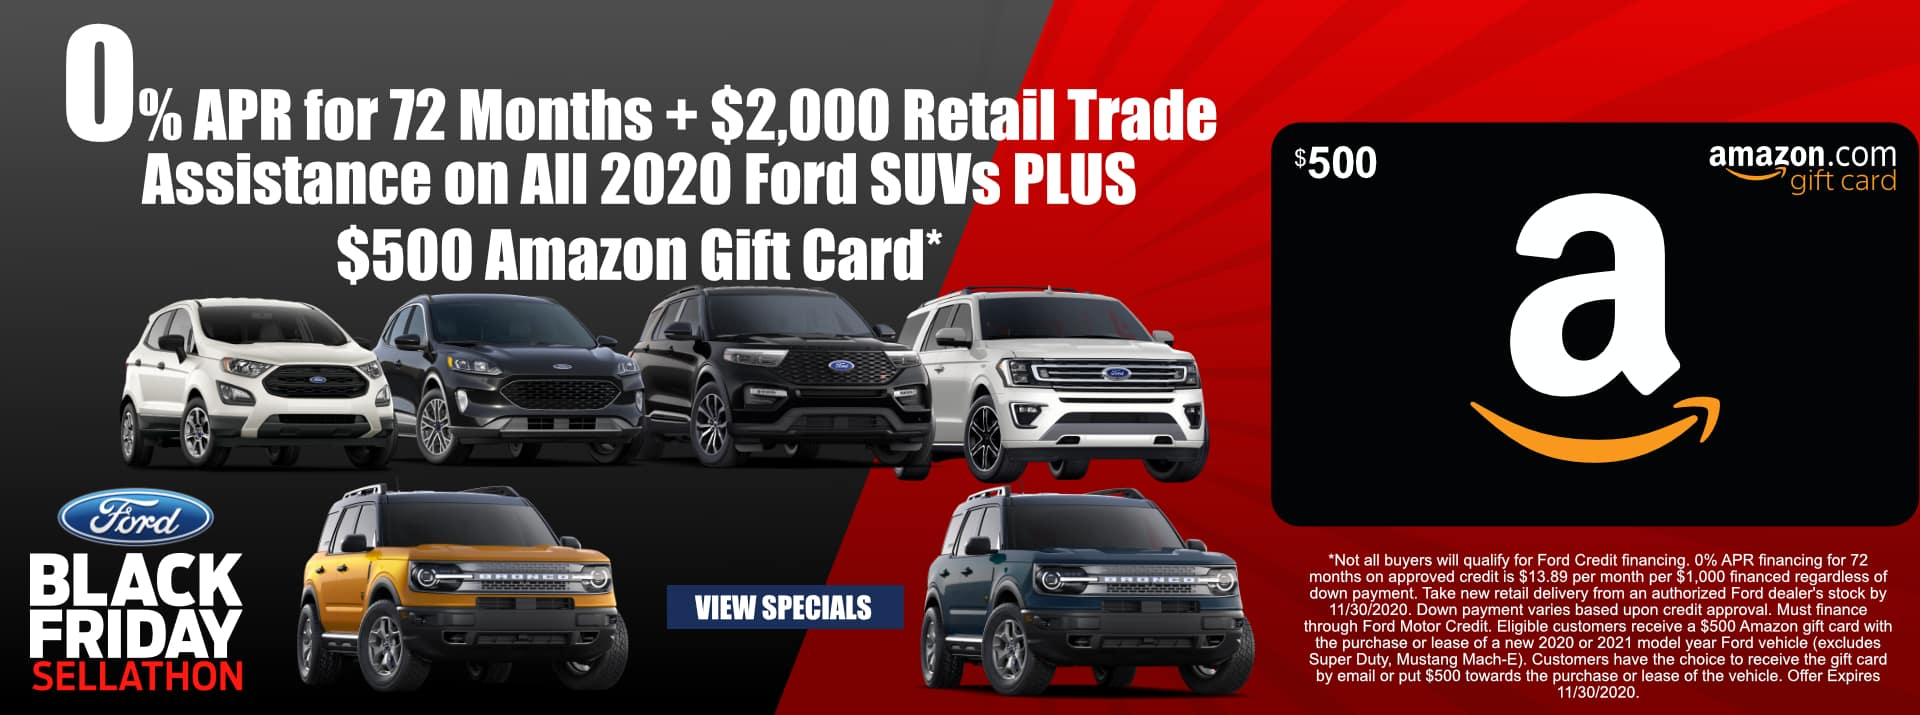 November-2020 Black Friday $500 Amazon Card SUV PSF